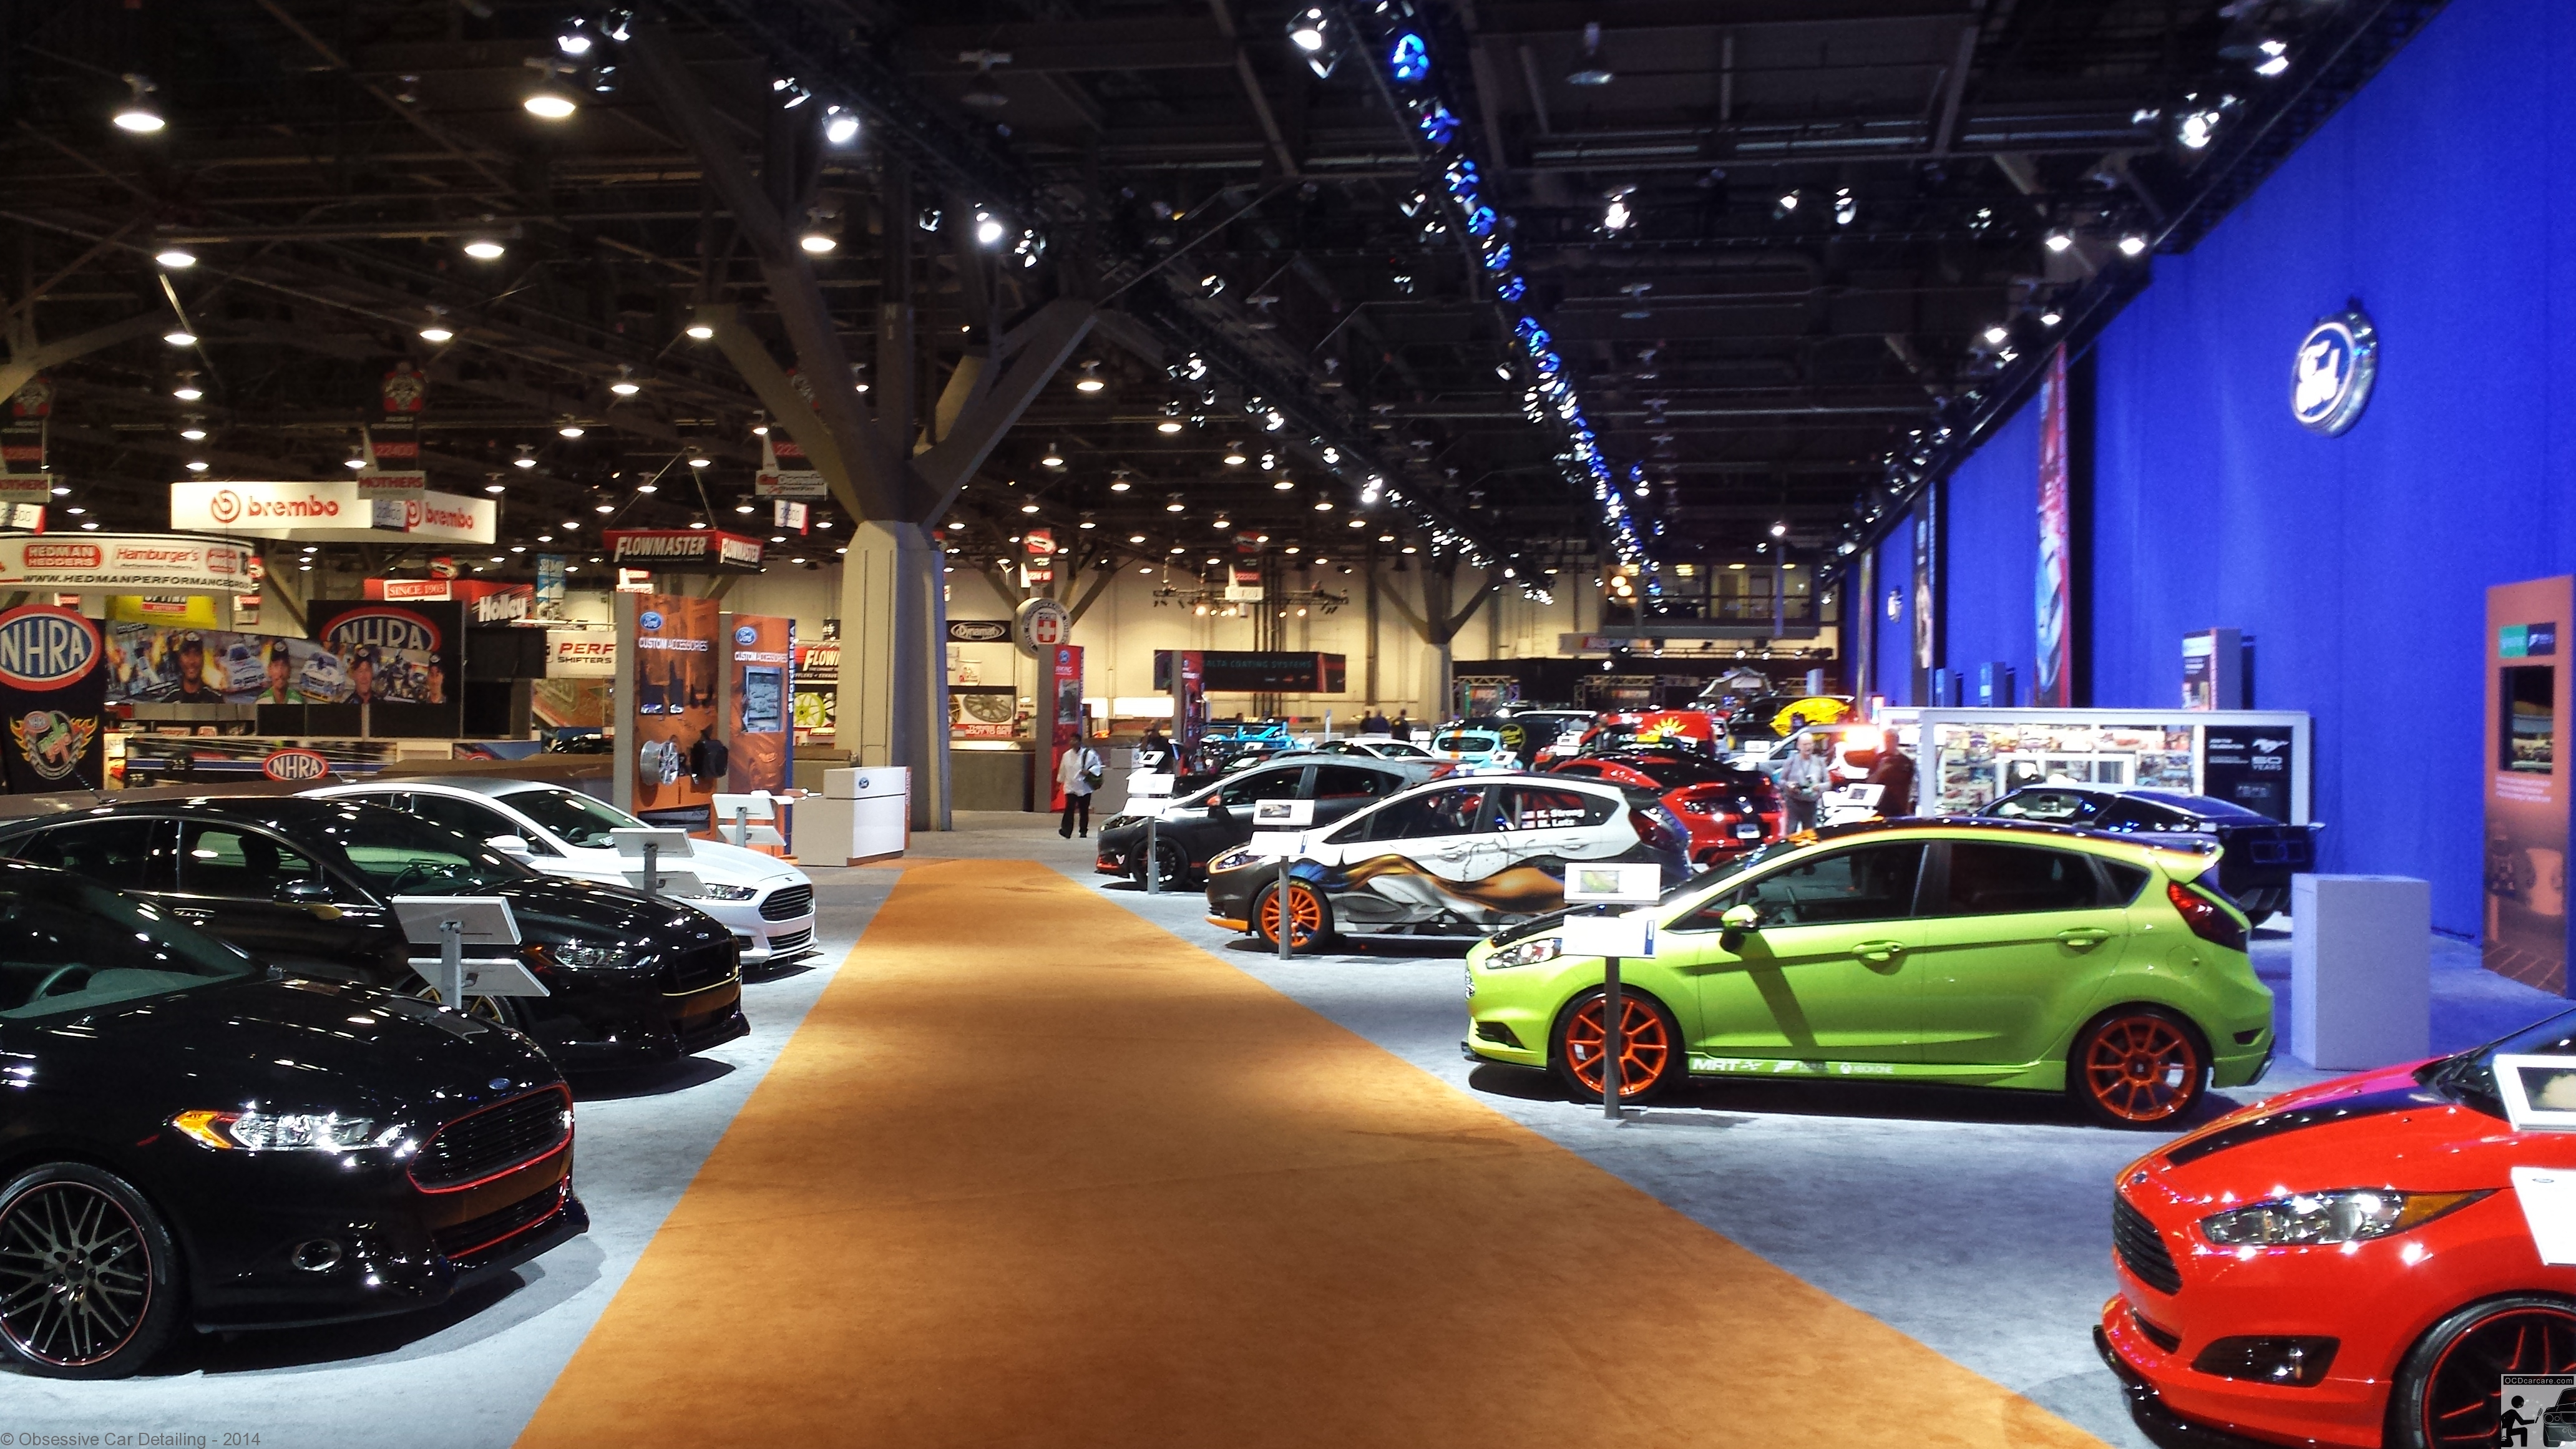 OCDCarCare SEMA 2013 - Ford booth before opening day. Paint Correction and detailing los angeles, ca.- www.ocdcarcare.com